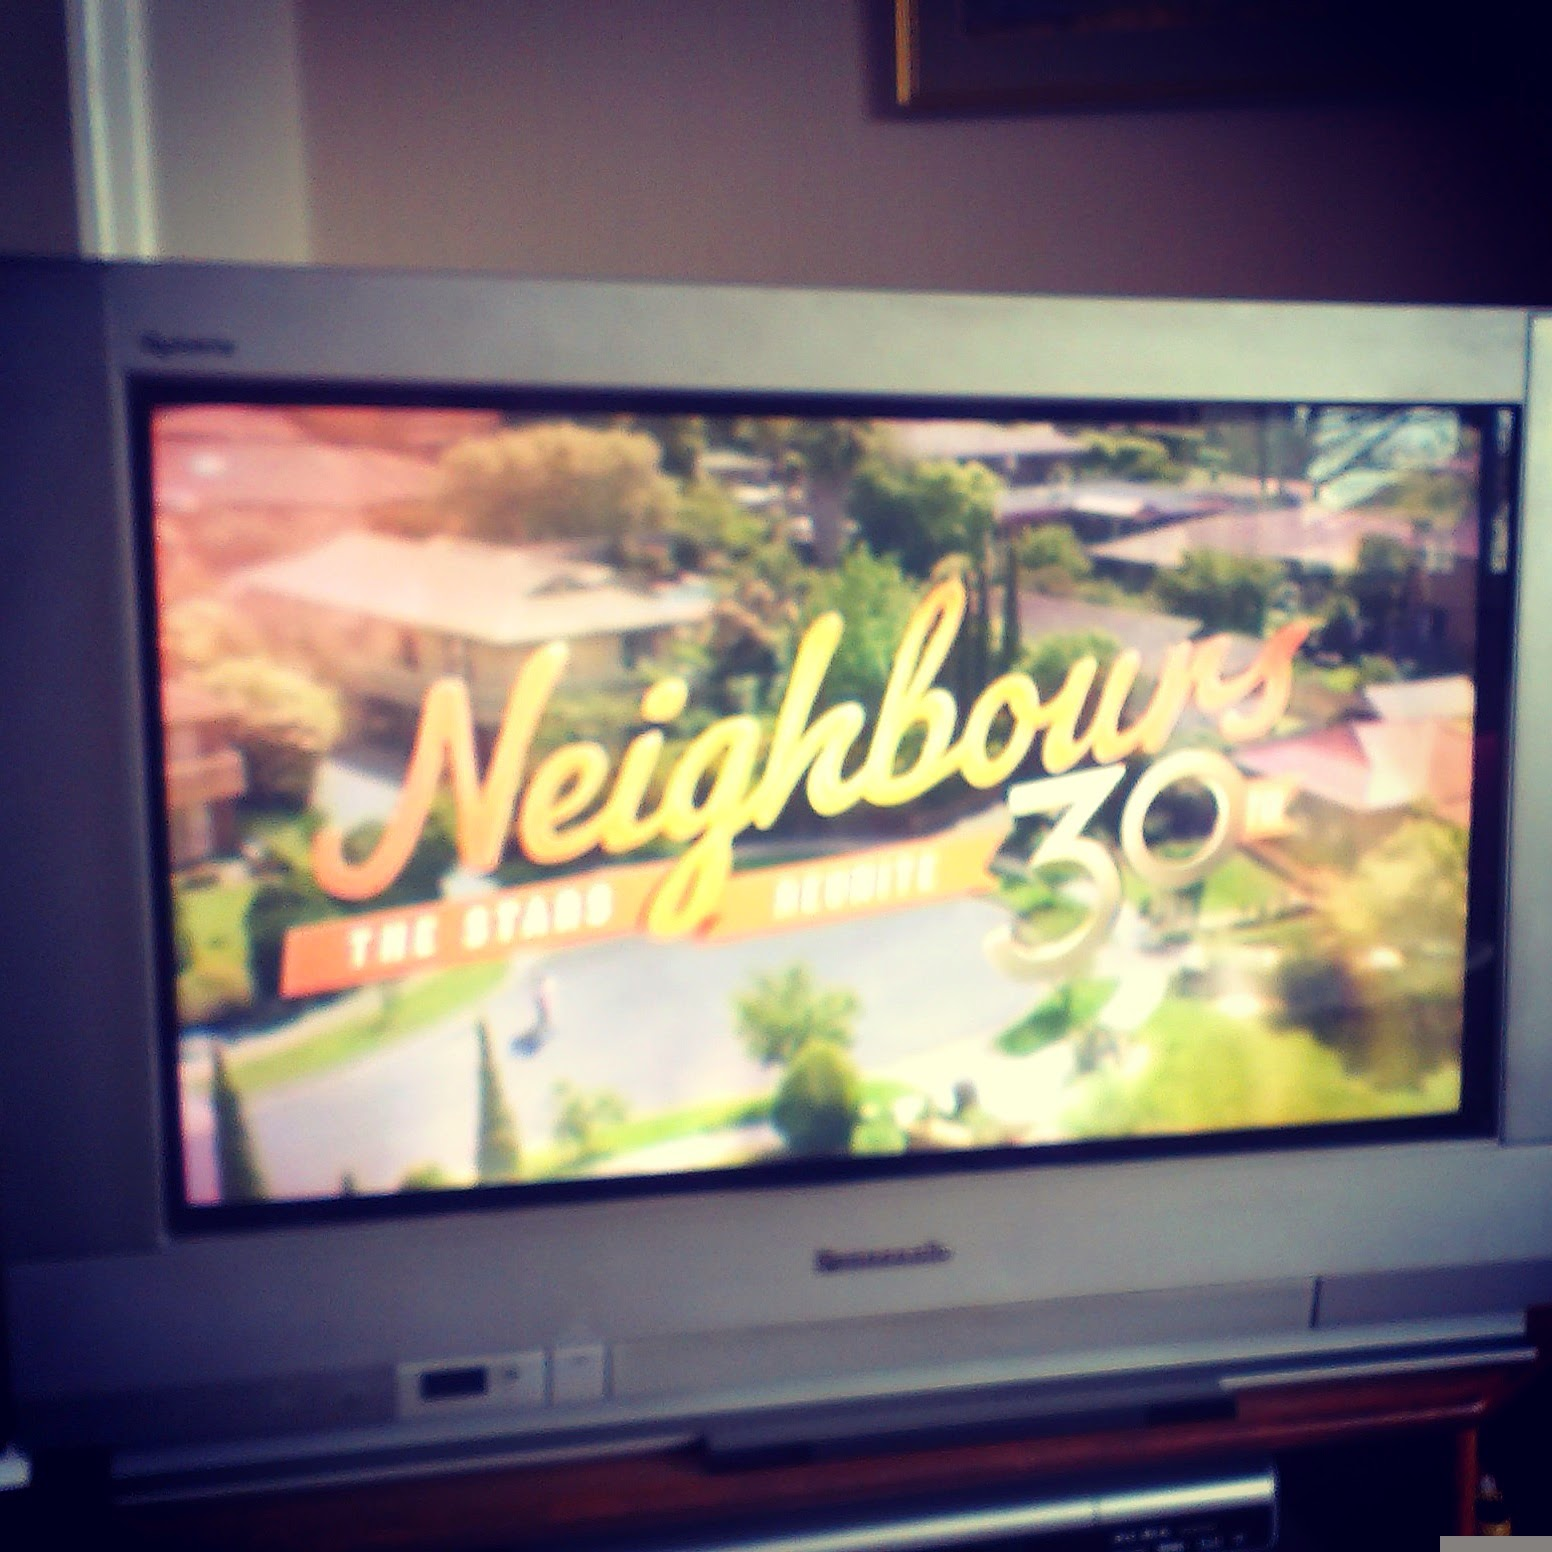 12pm - watching the Neighbours 30th reunion programme